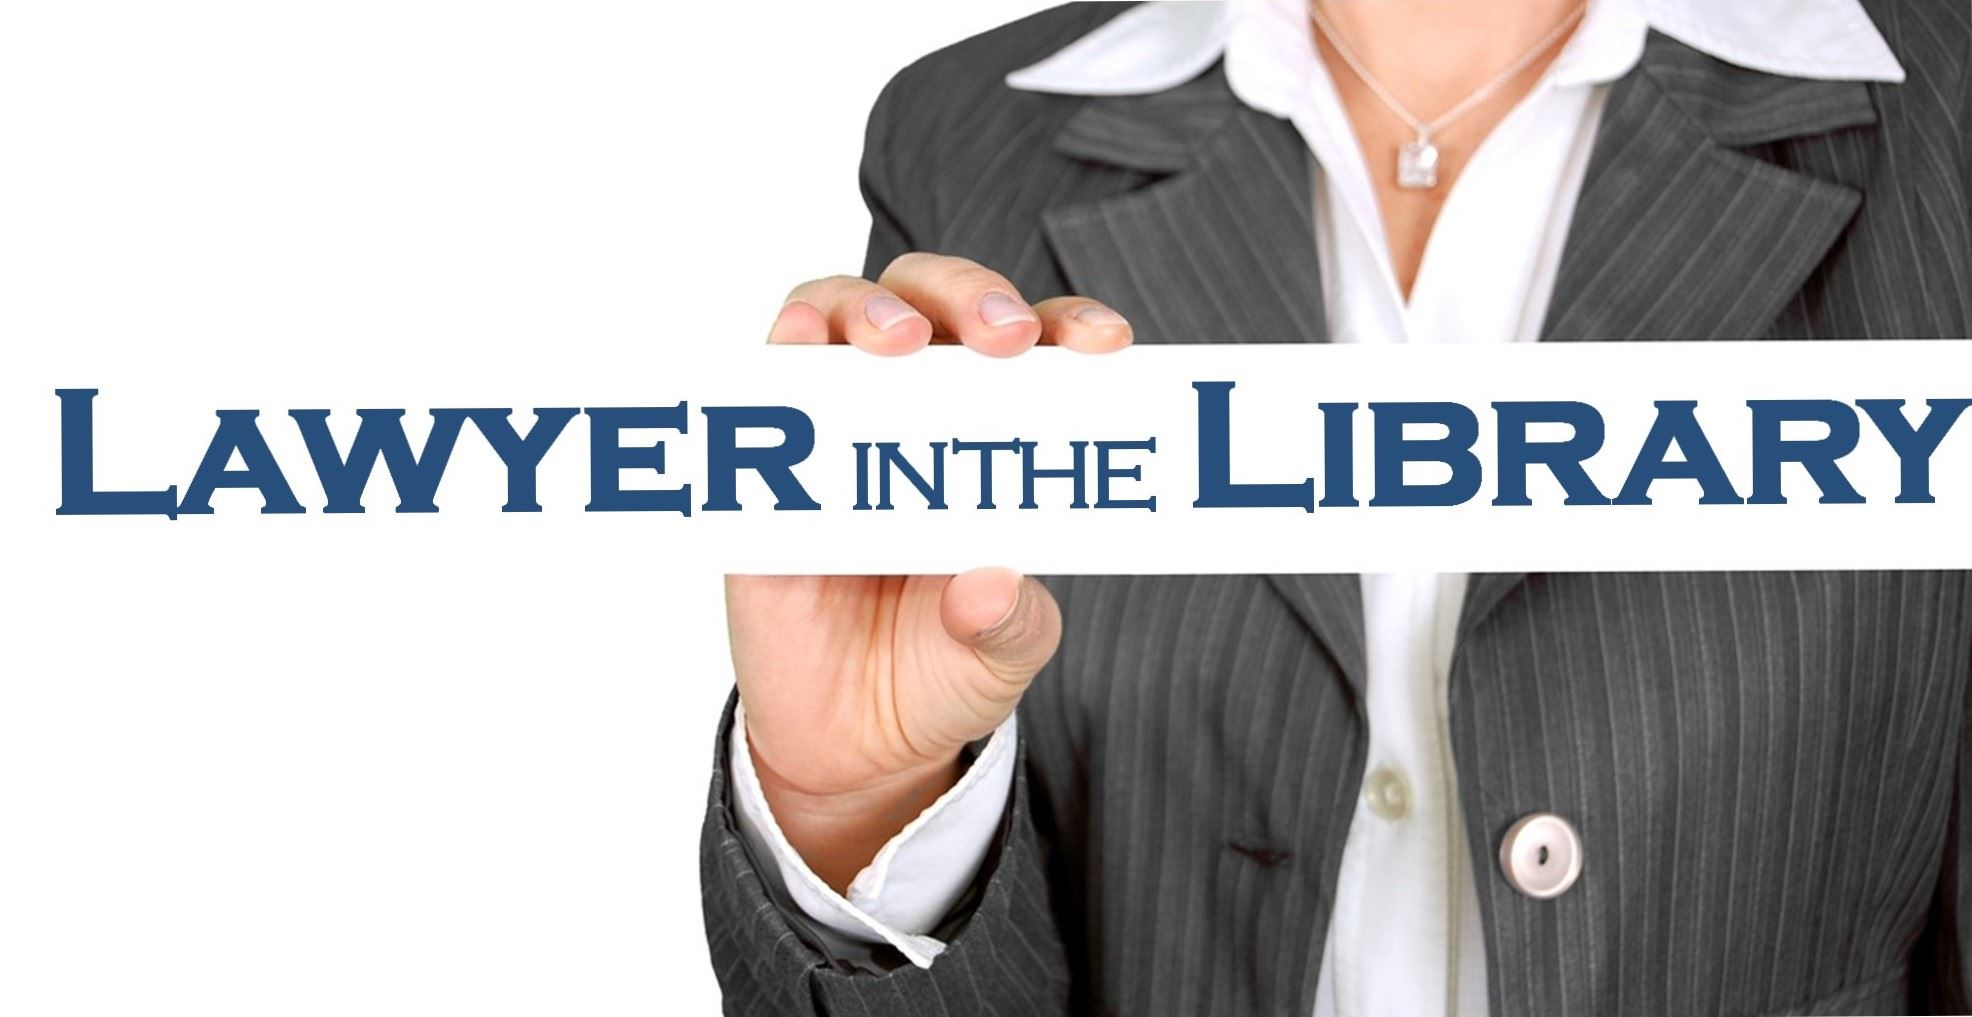 lawyer-library.jpg